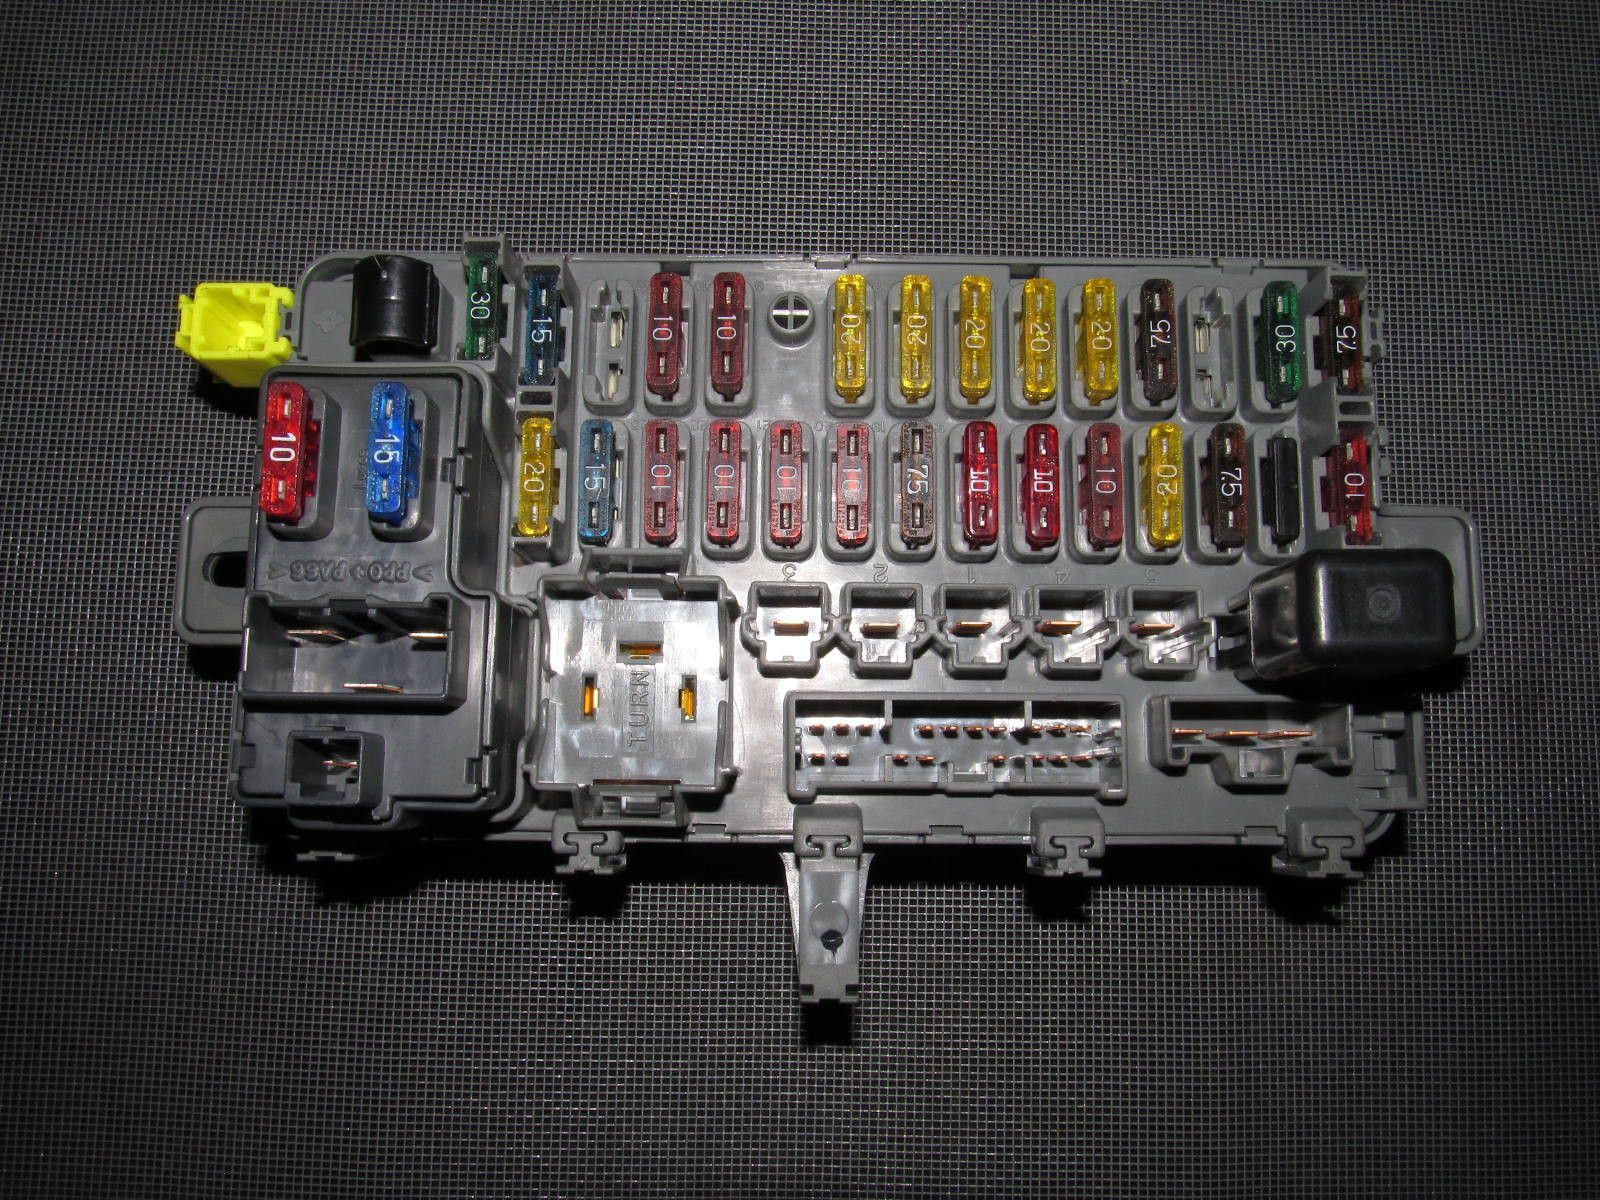 Fuse Box For Acura Integra Starting Know About Wiring Diagram 1997 94 01 Oem Interior With Integration Unit Rh Pinterest Com 1996 1990